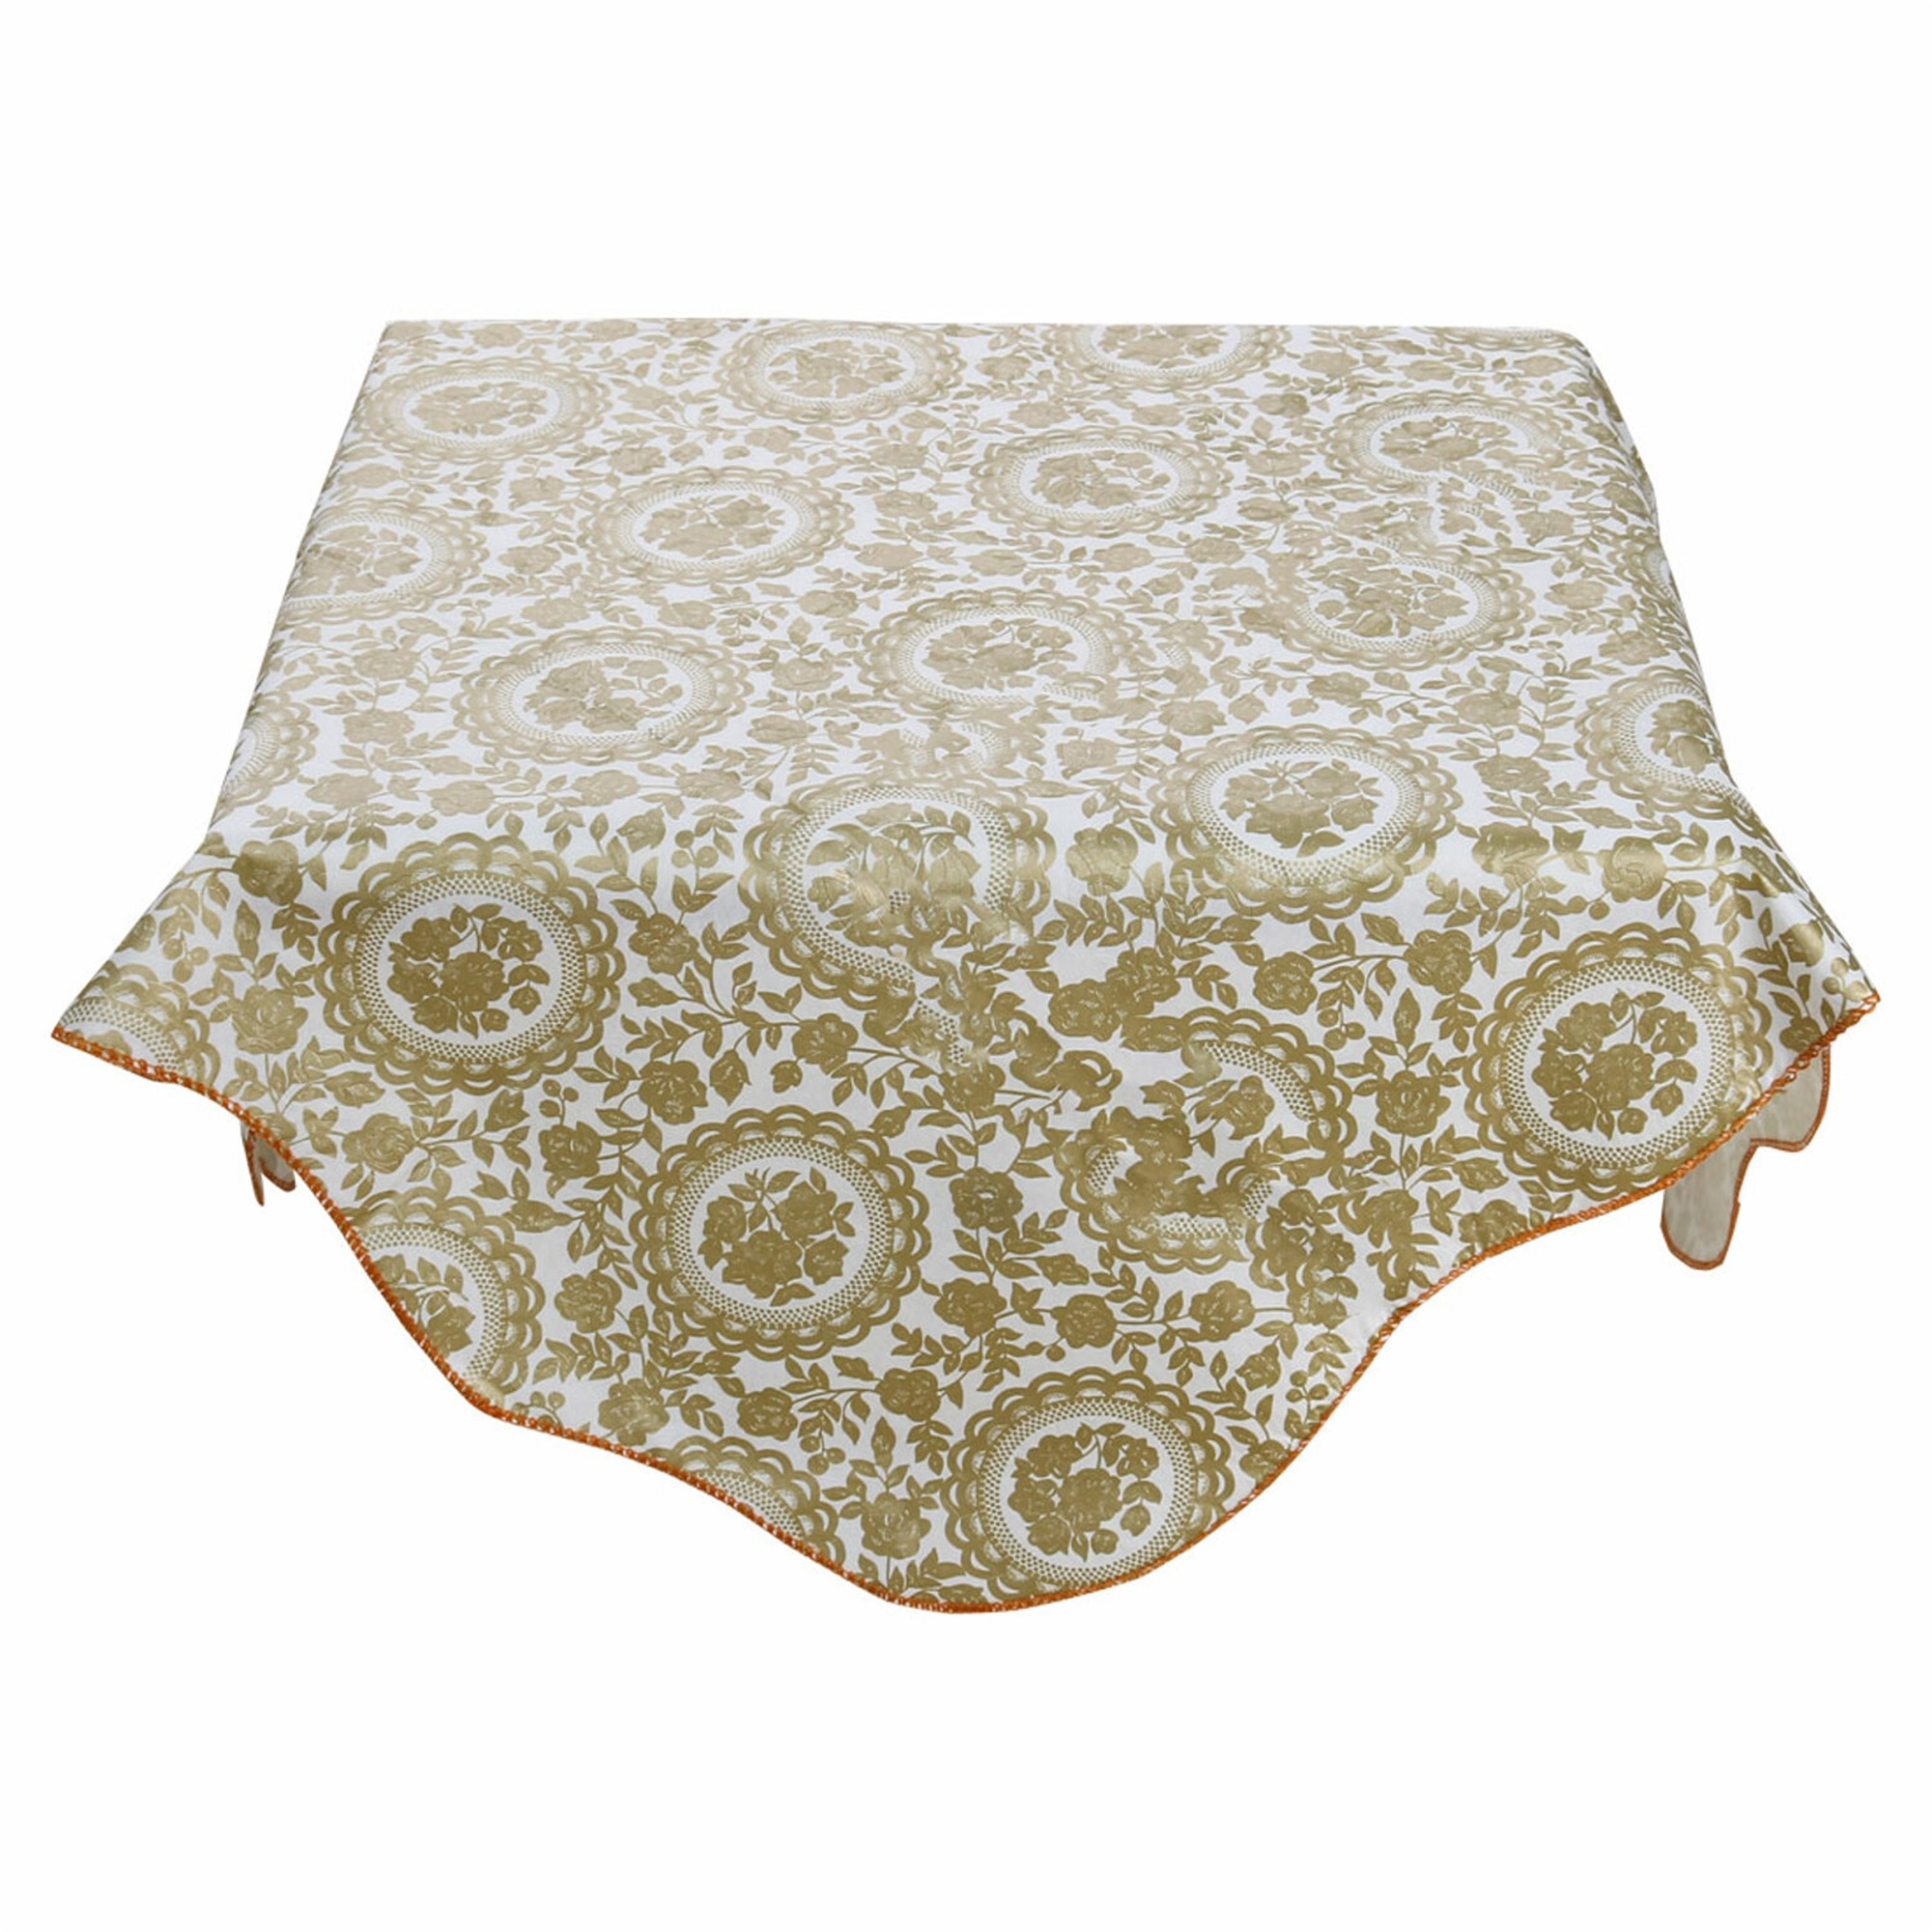 Home Picnic Square Turntable Flower Pattern Water Resistant Oil-proof Tablecloth Table Cloth Cover Gold Tone 35 x 35 Inch